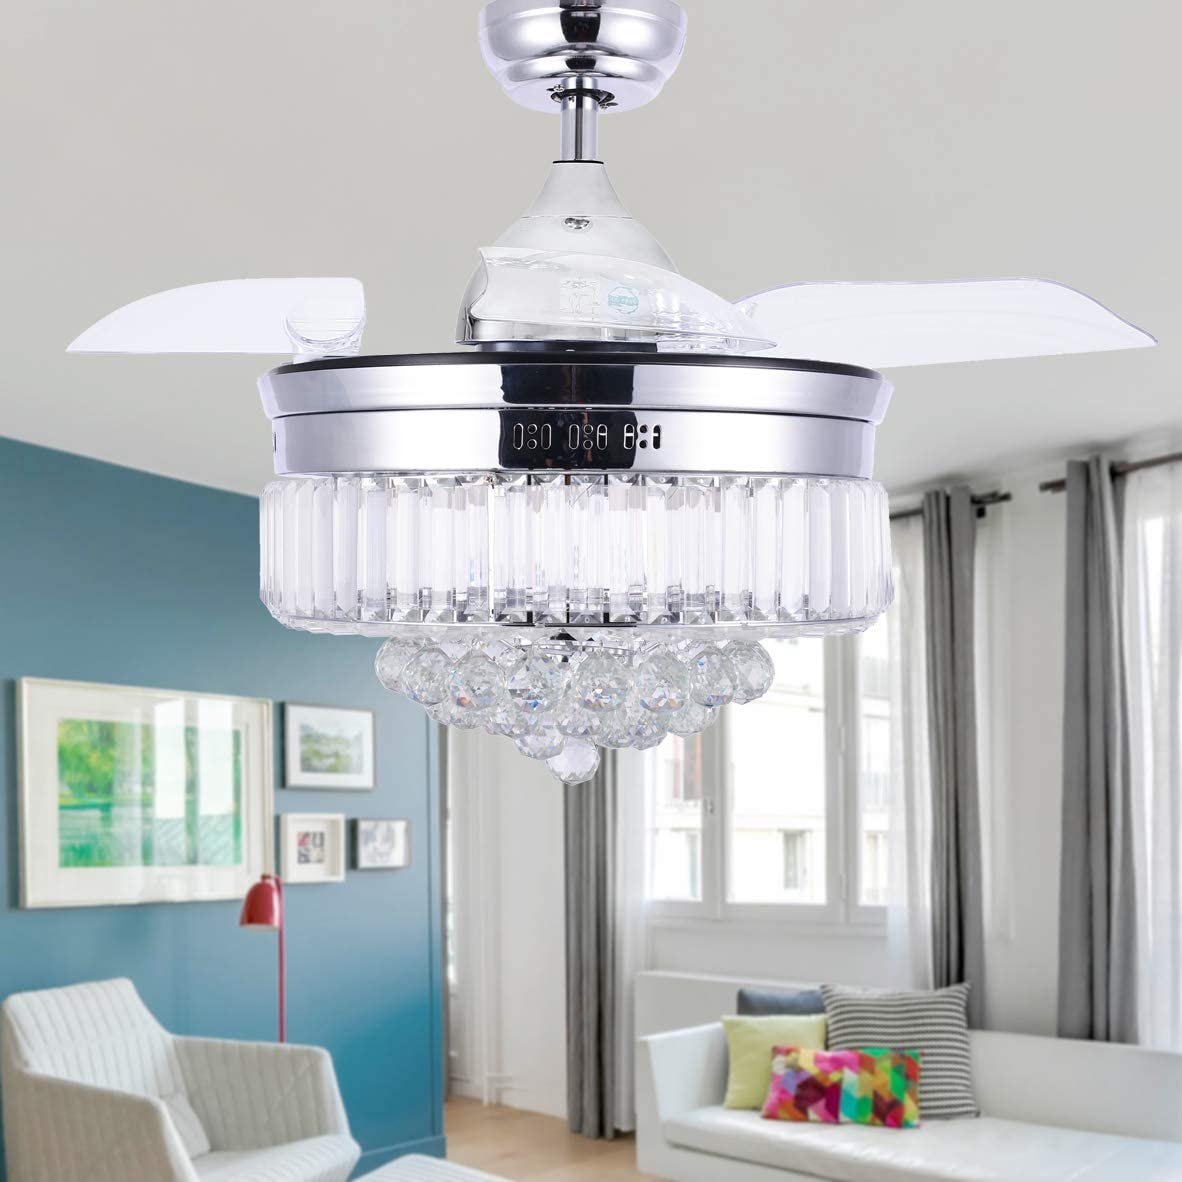 Bella Depot Modern Drum Ceiling Fan, 42 3 Bladeless Ceiling Fan Chandelier fan, CCT Dimmable LED Lights, Remote Control, Retractable Blades, Crystals, Chrome